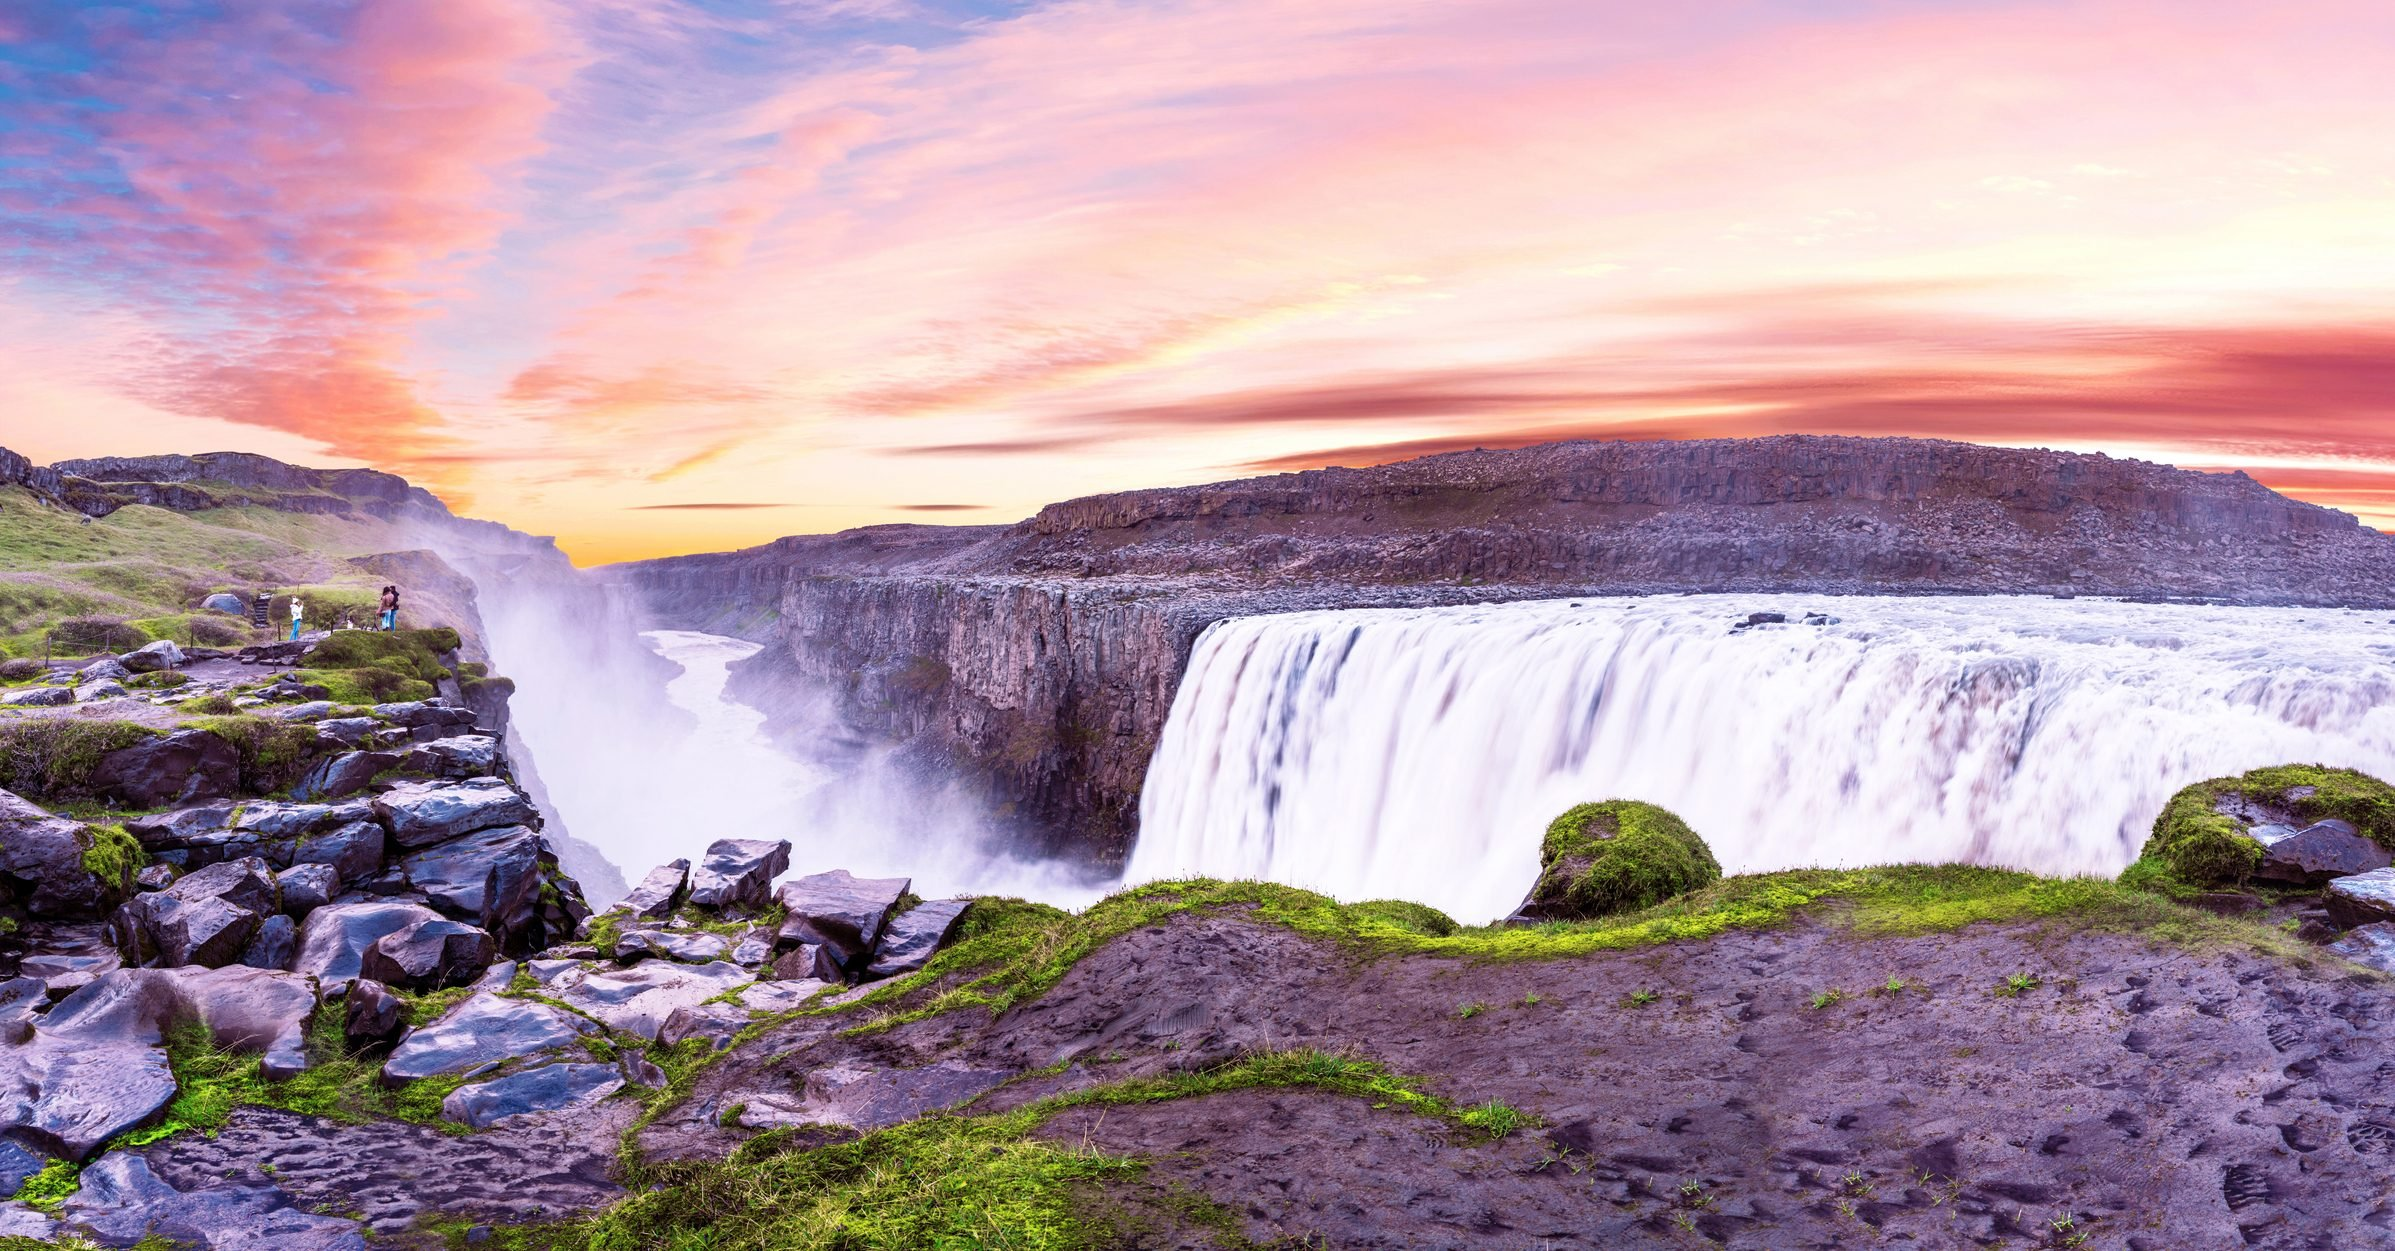 Beautiful landscape panorama with most powerful waterfall in Europe Dettifoss in Vatnajokull National Park in Northeast Iceland. Exotic countries. Amazing places. (Meditation, antistress - concept).